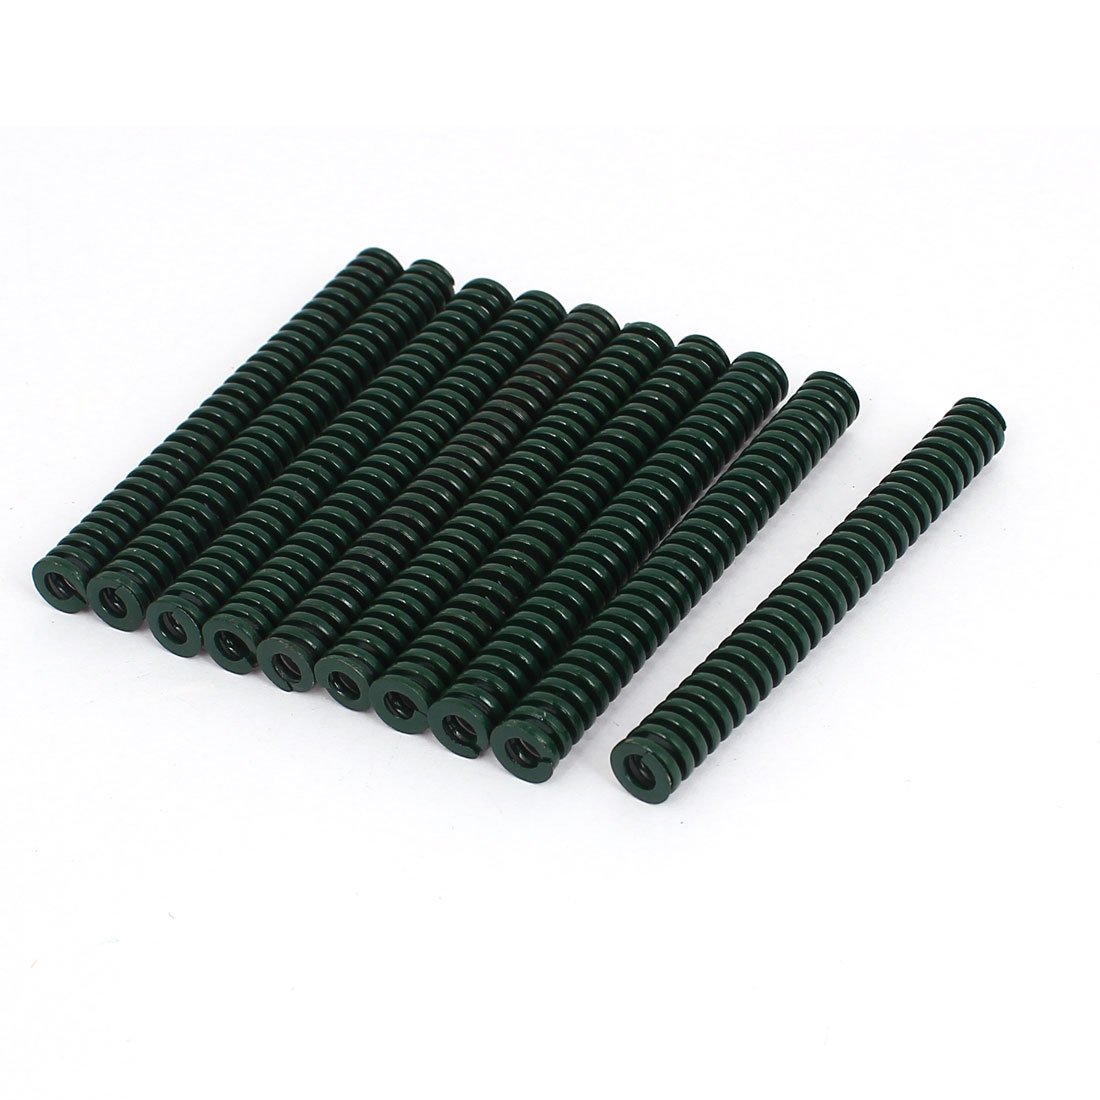 8mm OD 70mm Long Heavy Load Stamping Compression Mould Die Spring Green 10pcs